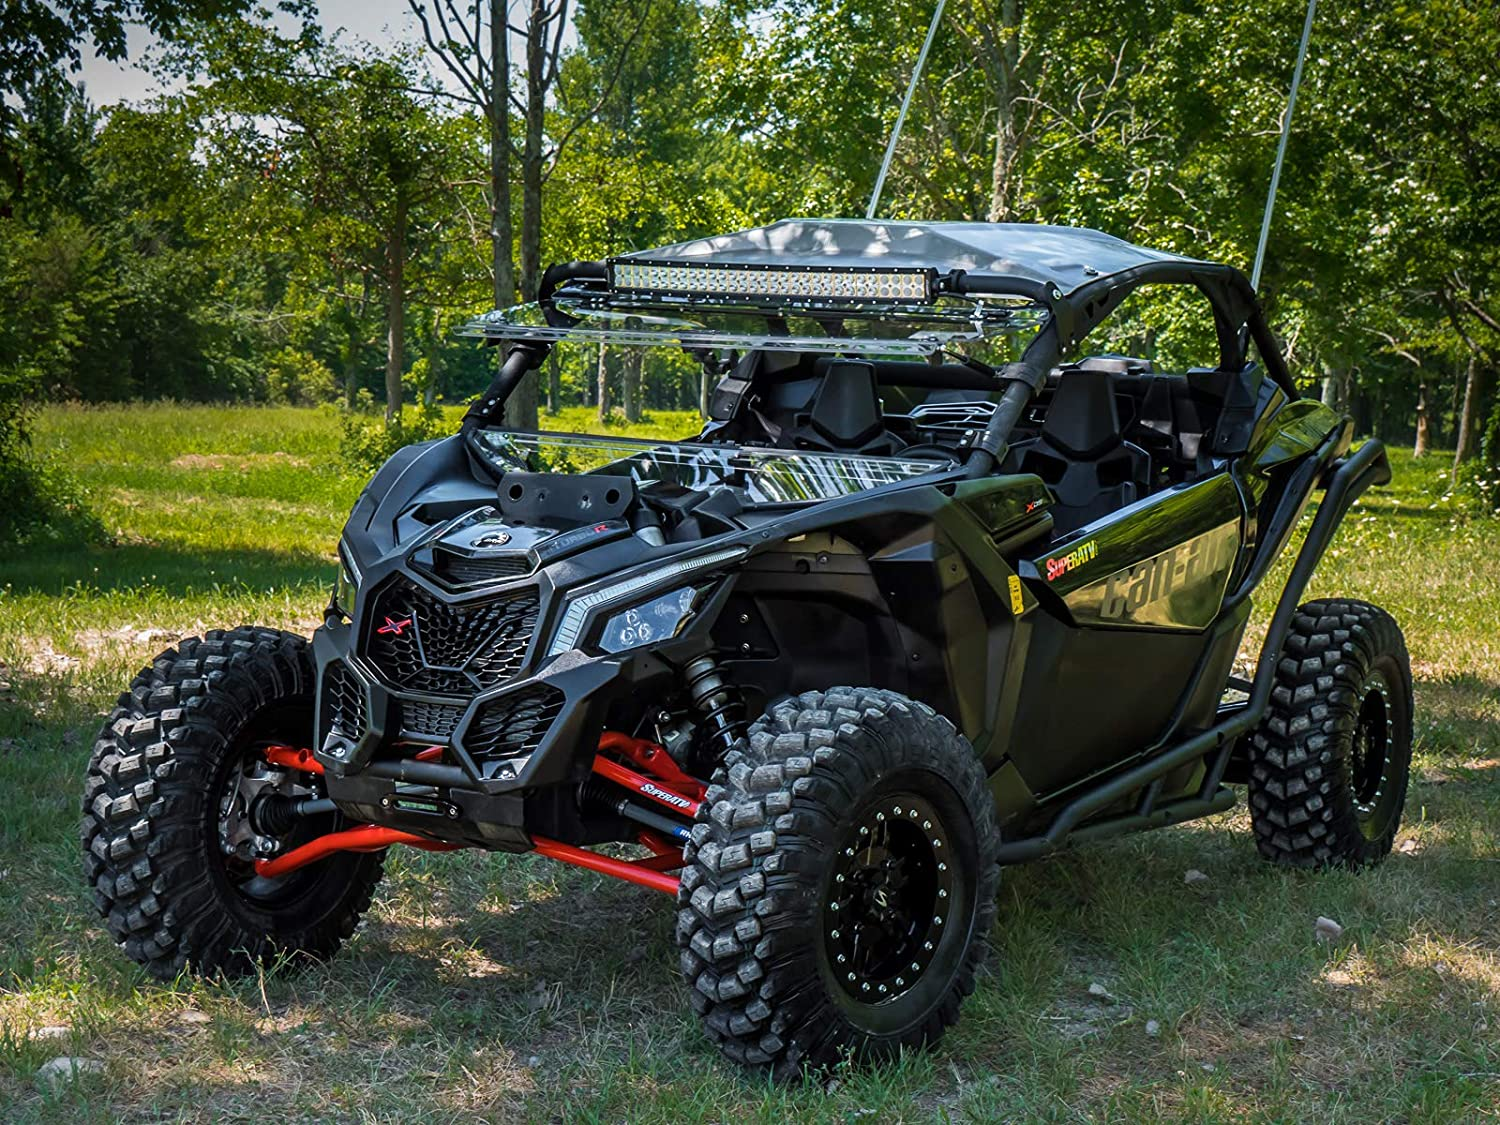 No Ball Joints Installed See Fitment SuperATV Heavy Duty High Clearance Front A-Arms for 64 Wide Can-Am Maverick X3 900 // Turbo//Max - BLACK 2017+